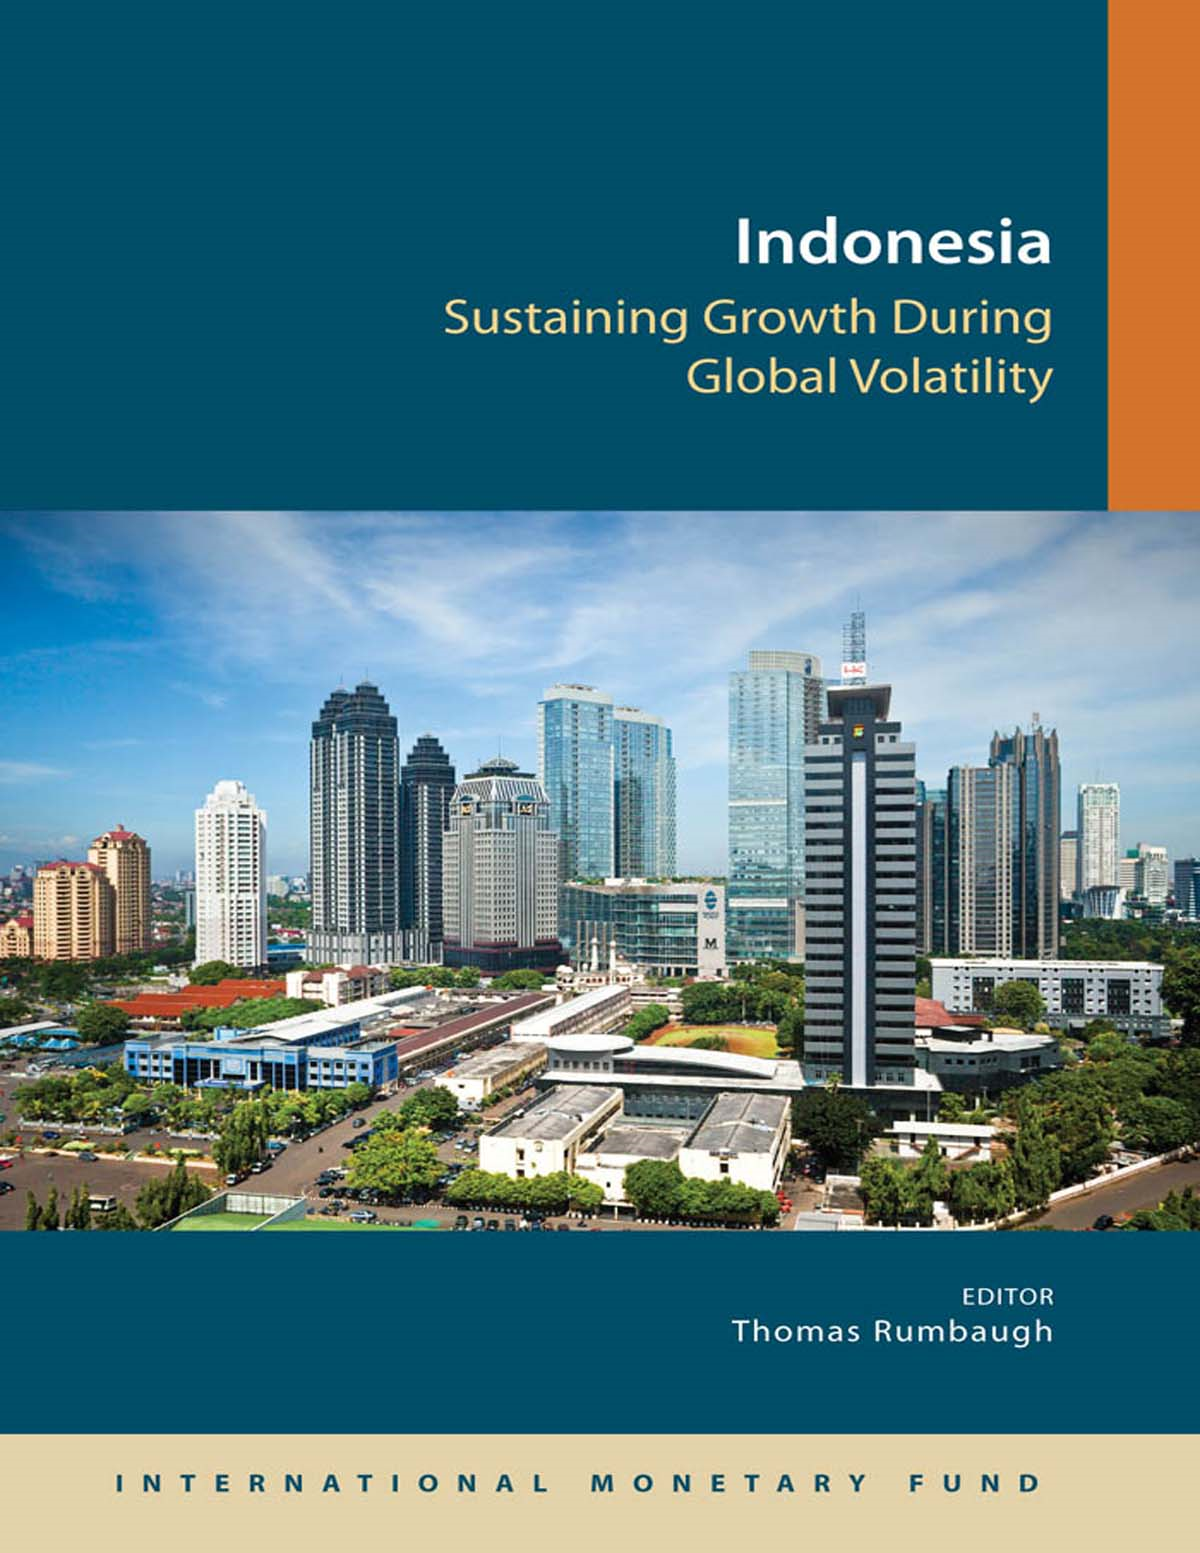 Indonesia: Sustaining Growth During Global Volatility